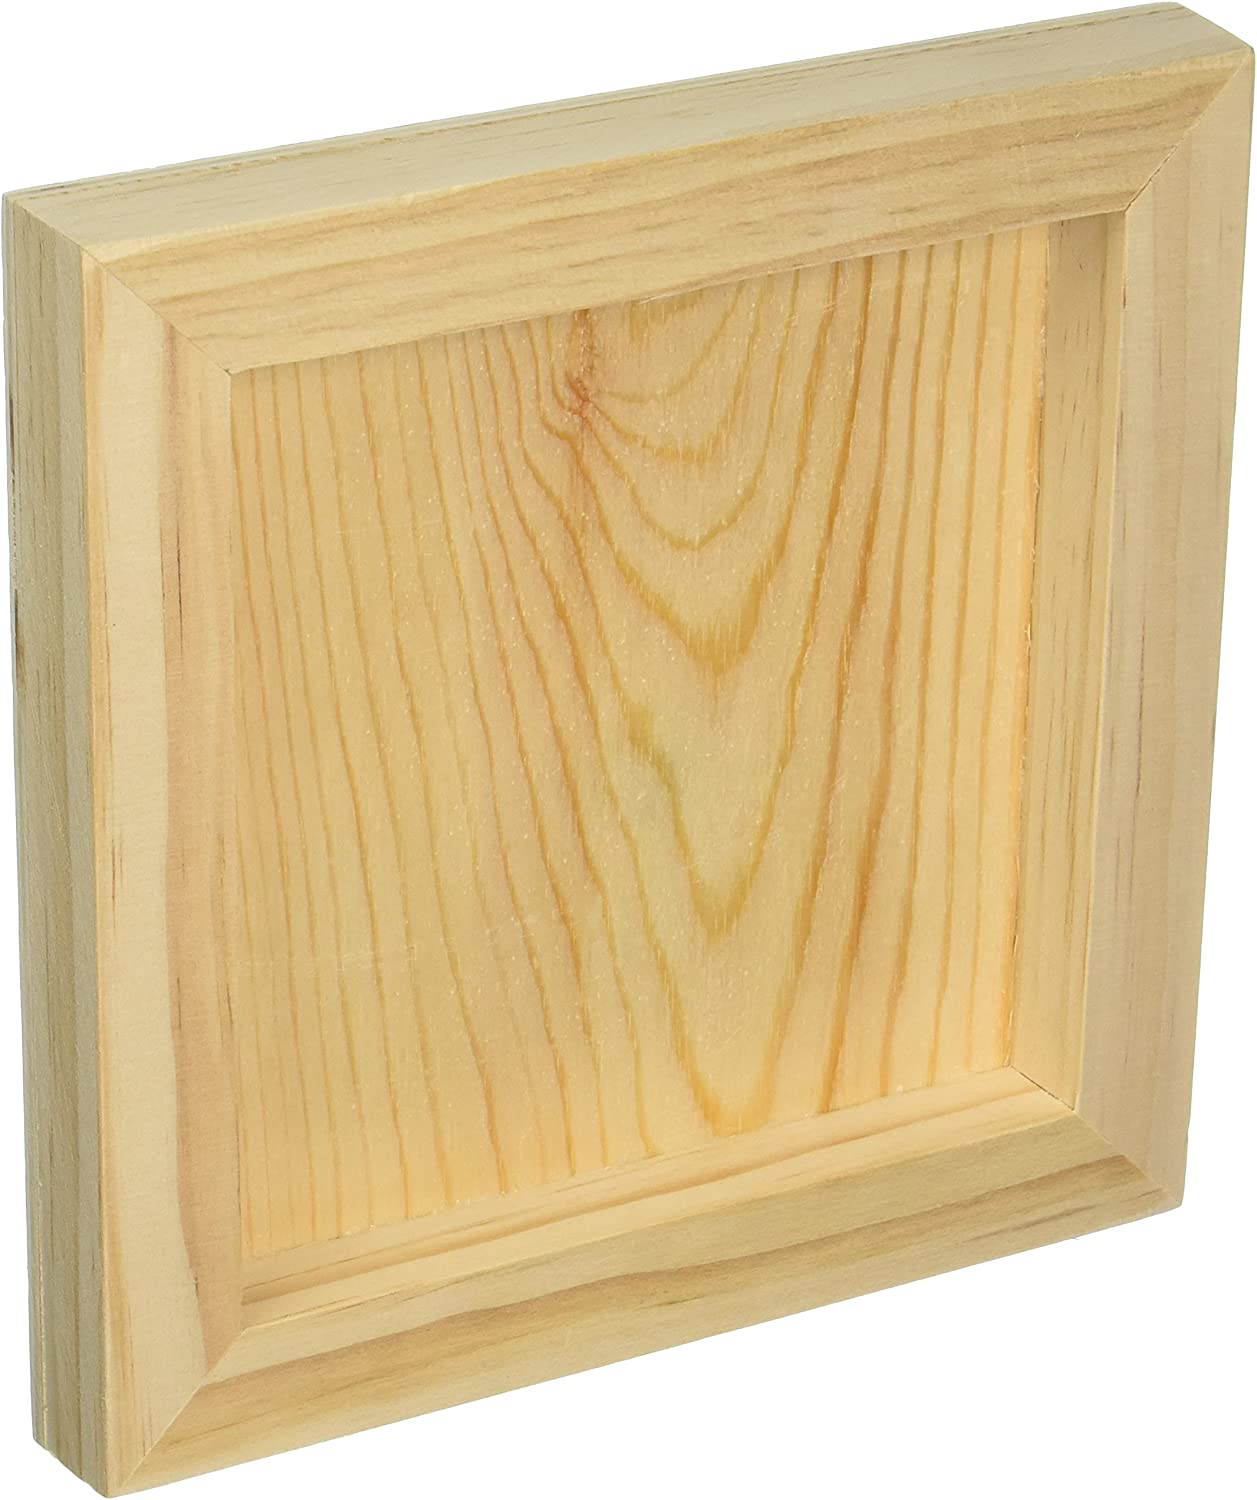 8 by 8 by 1-Inch DARICE 9190-334 Unfinished Wood Wall Panel